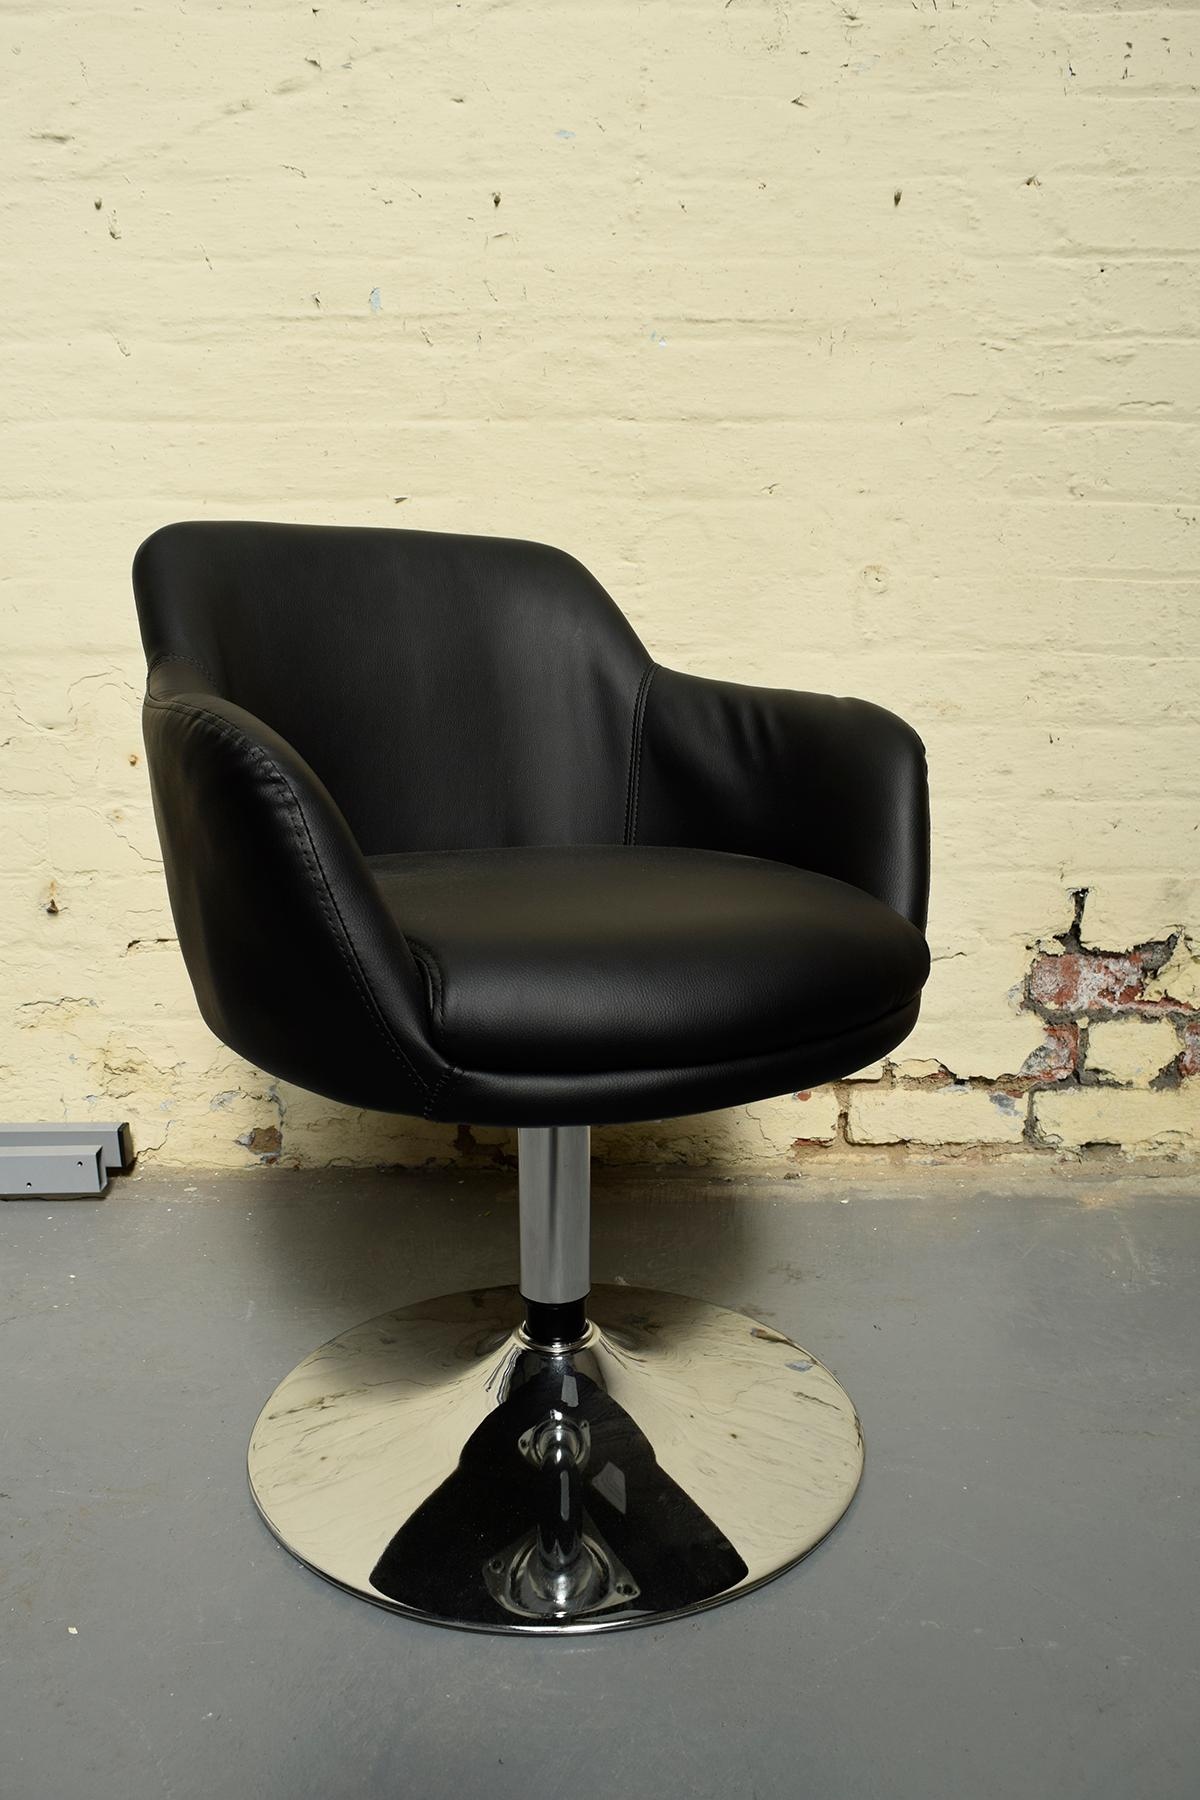 Black Faux Leather Swivel Chair Bucket Seat In M12 Manchester For 60 00 For Sale Shpock